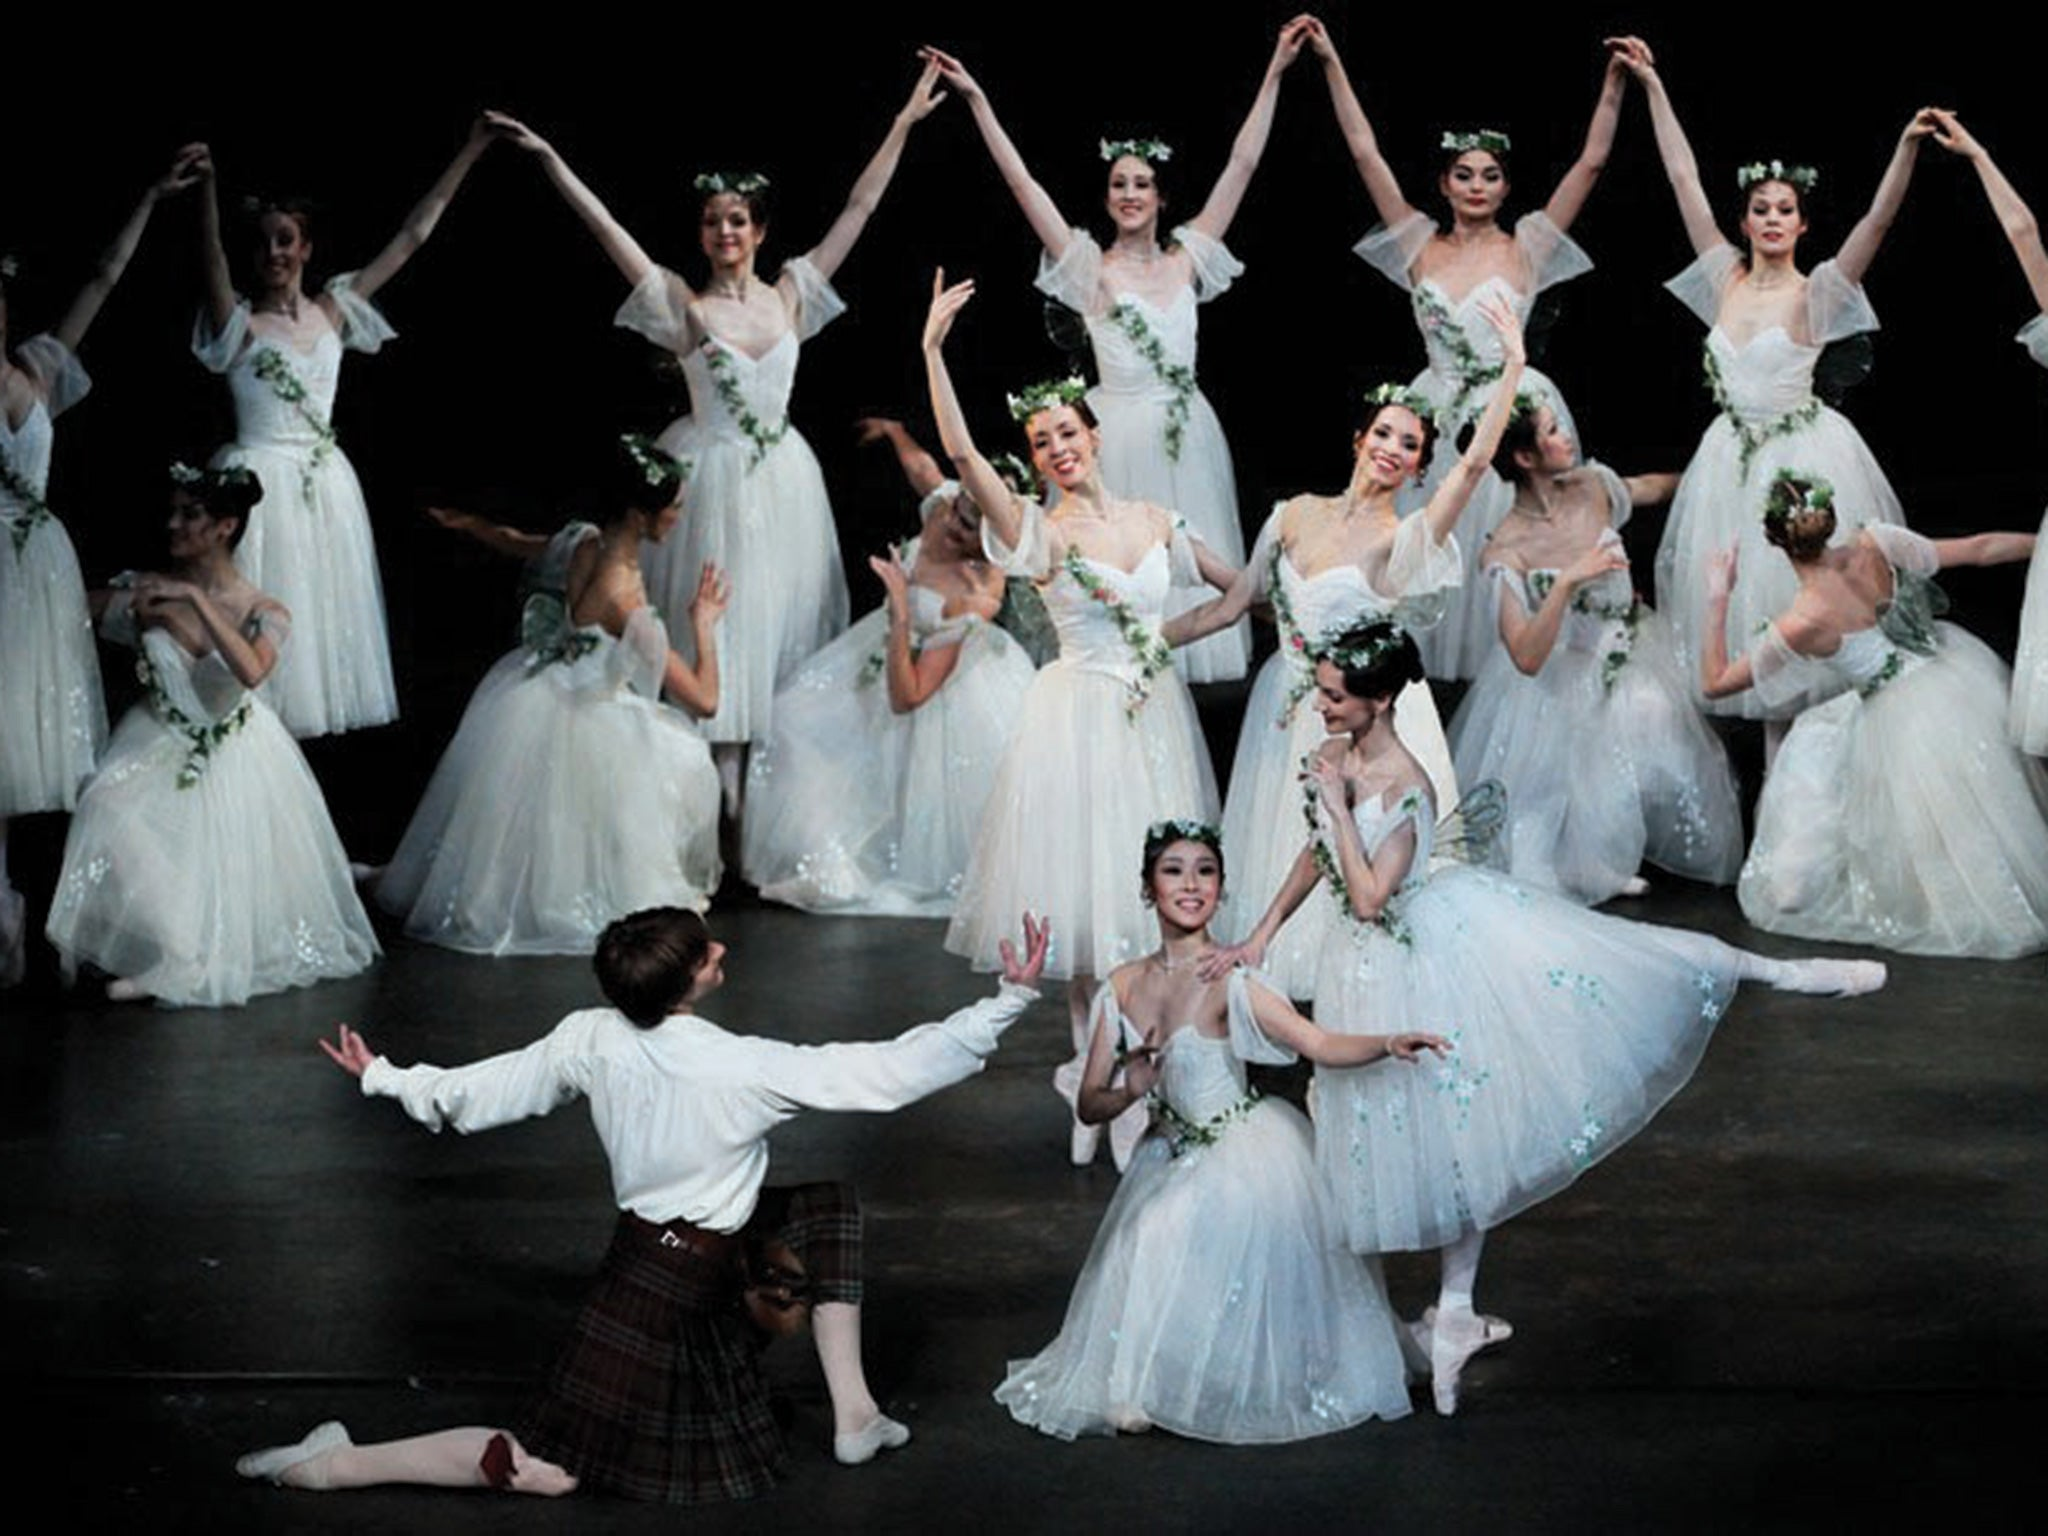 la sylphide La sylphide (mariinsky theatre, ballet) - best ticket price, booking online,  paypal and credit card payments, st petersburg, russia.